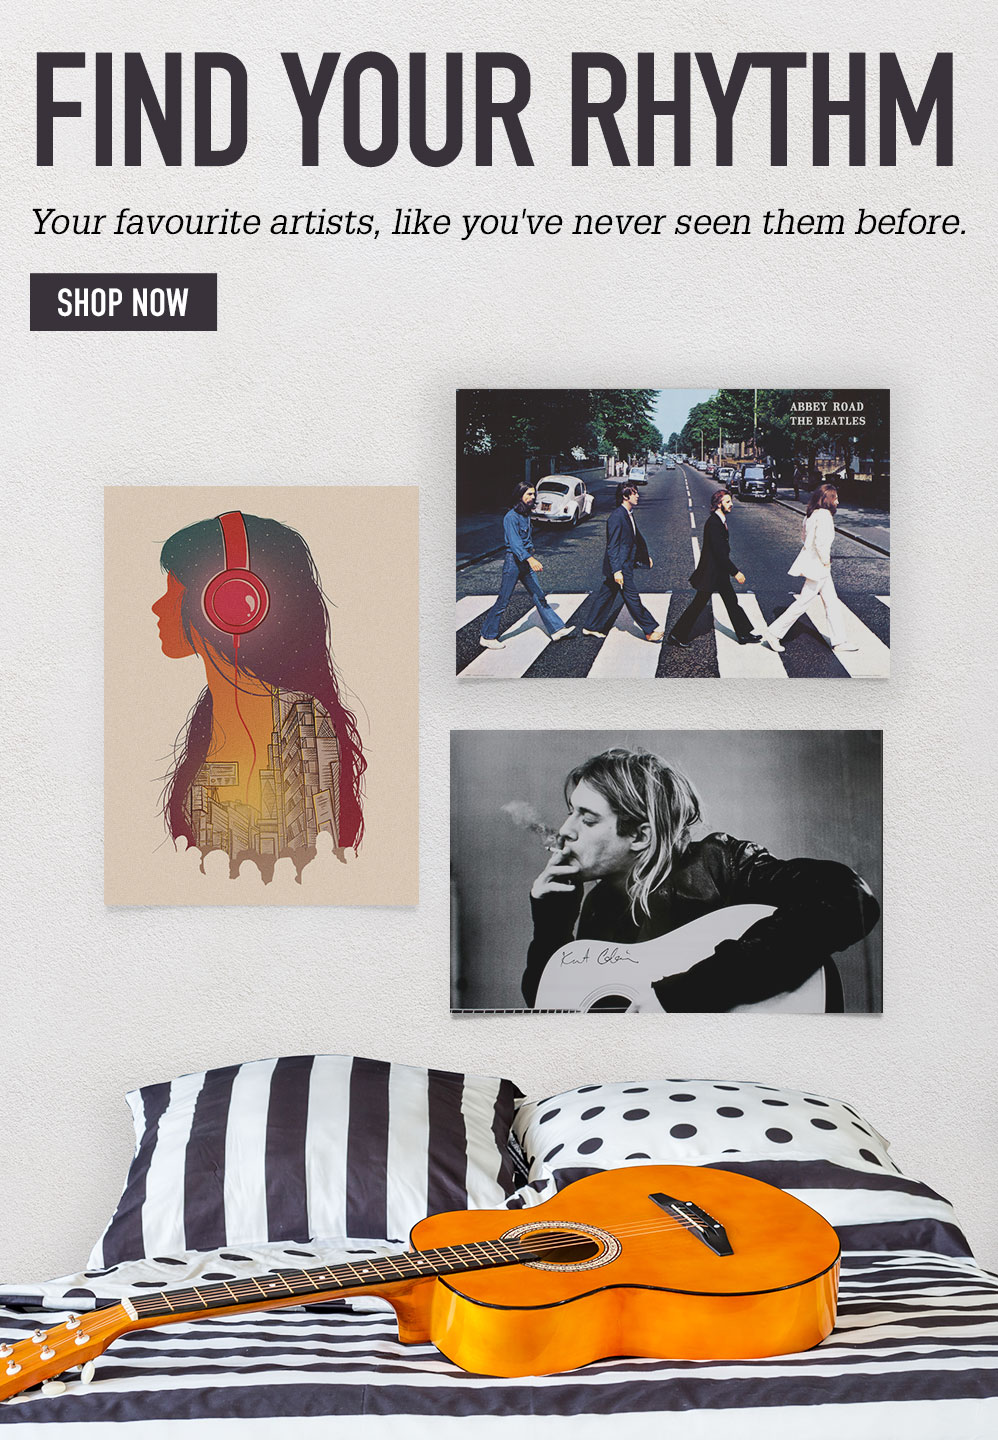 Buy Posters, Art Prints and Art Posters at AllPosters.co.uk